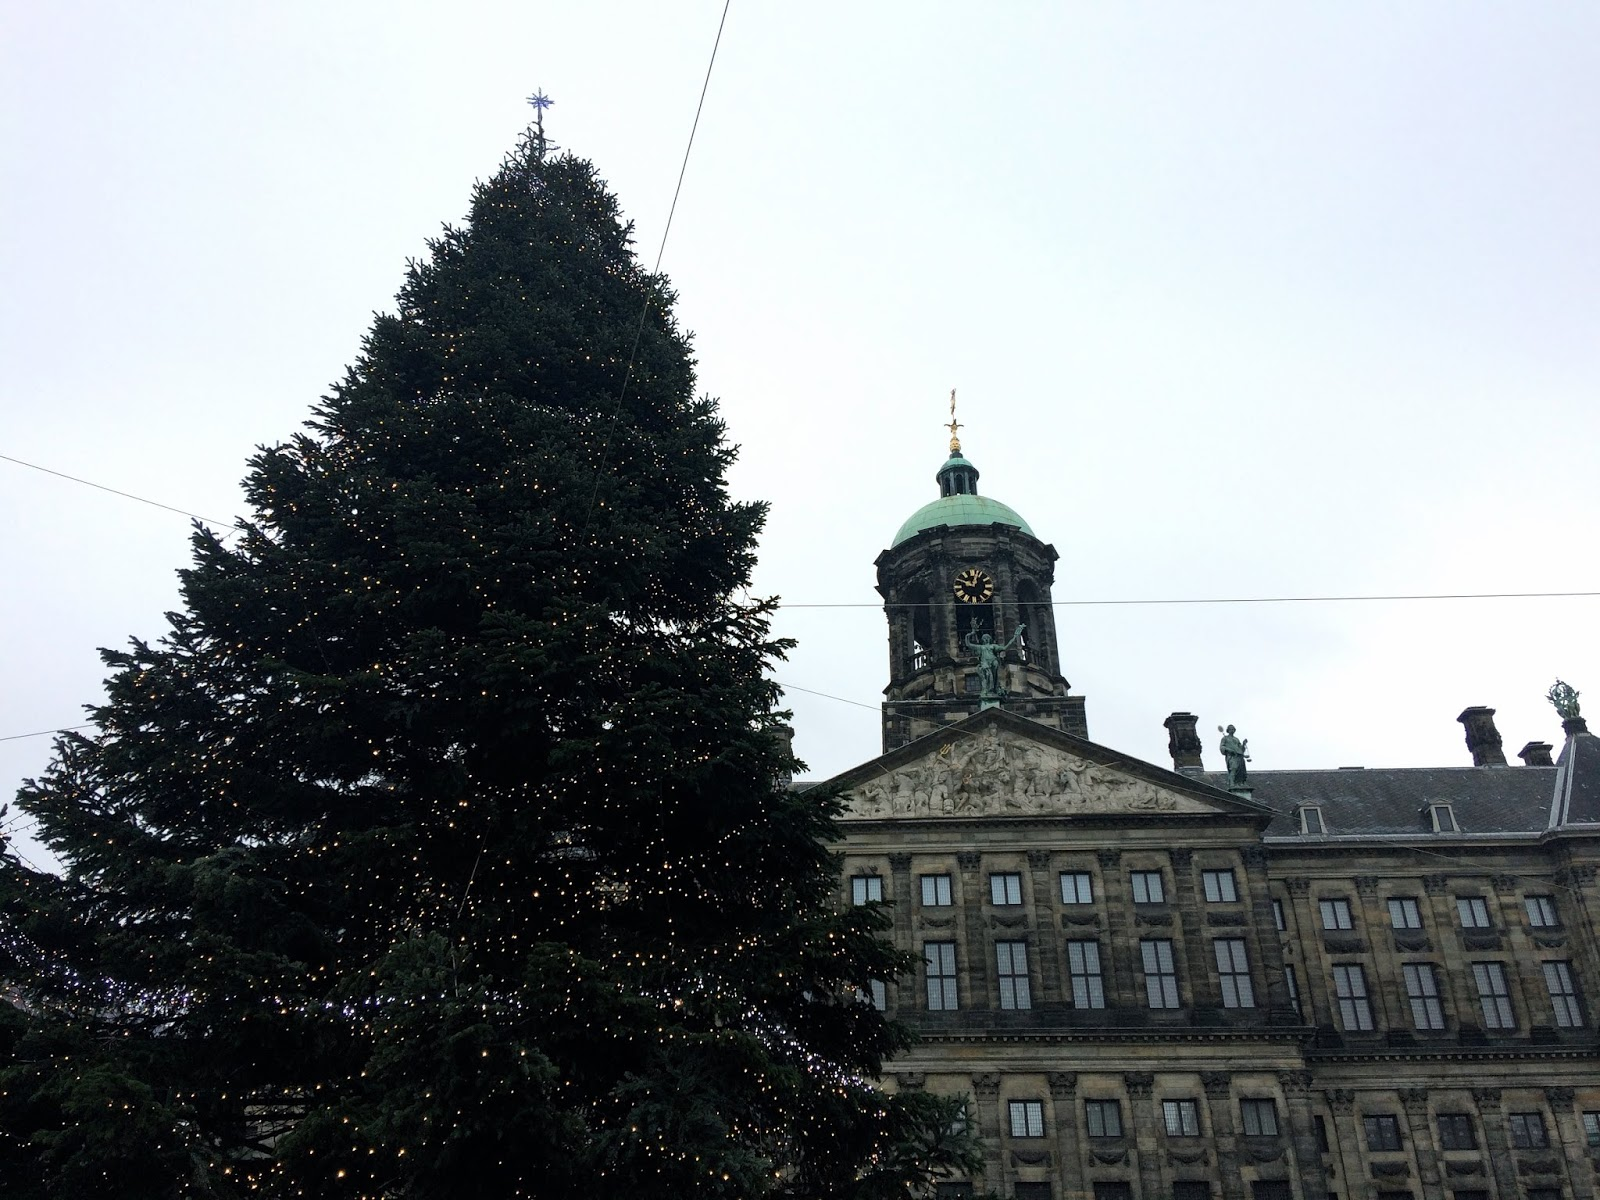 Huge Christmas tree in Amsterdam Dam Square